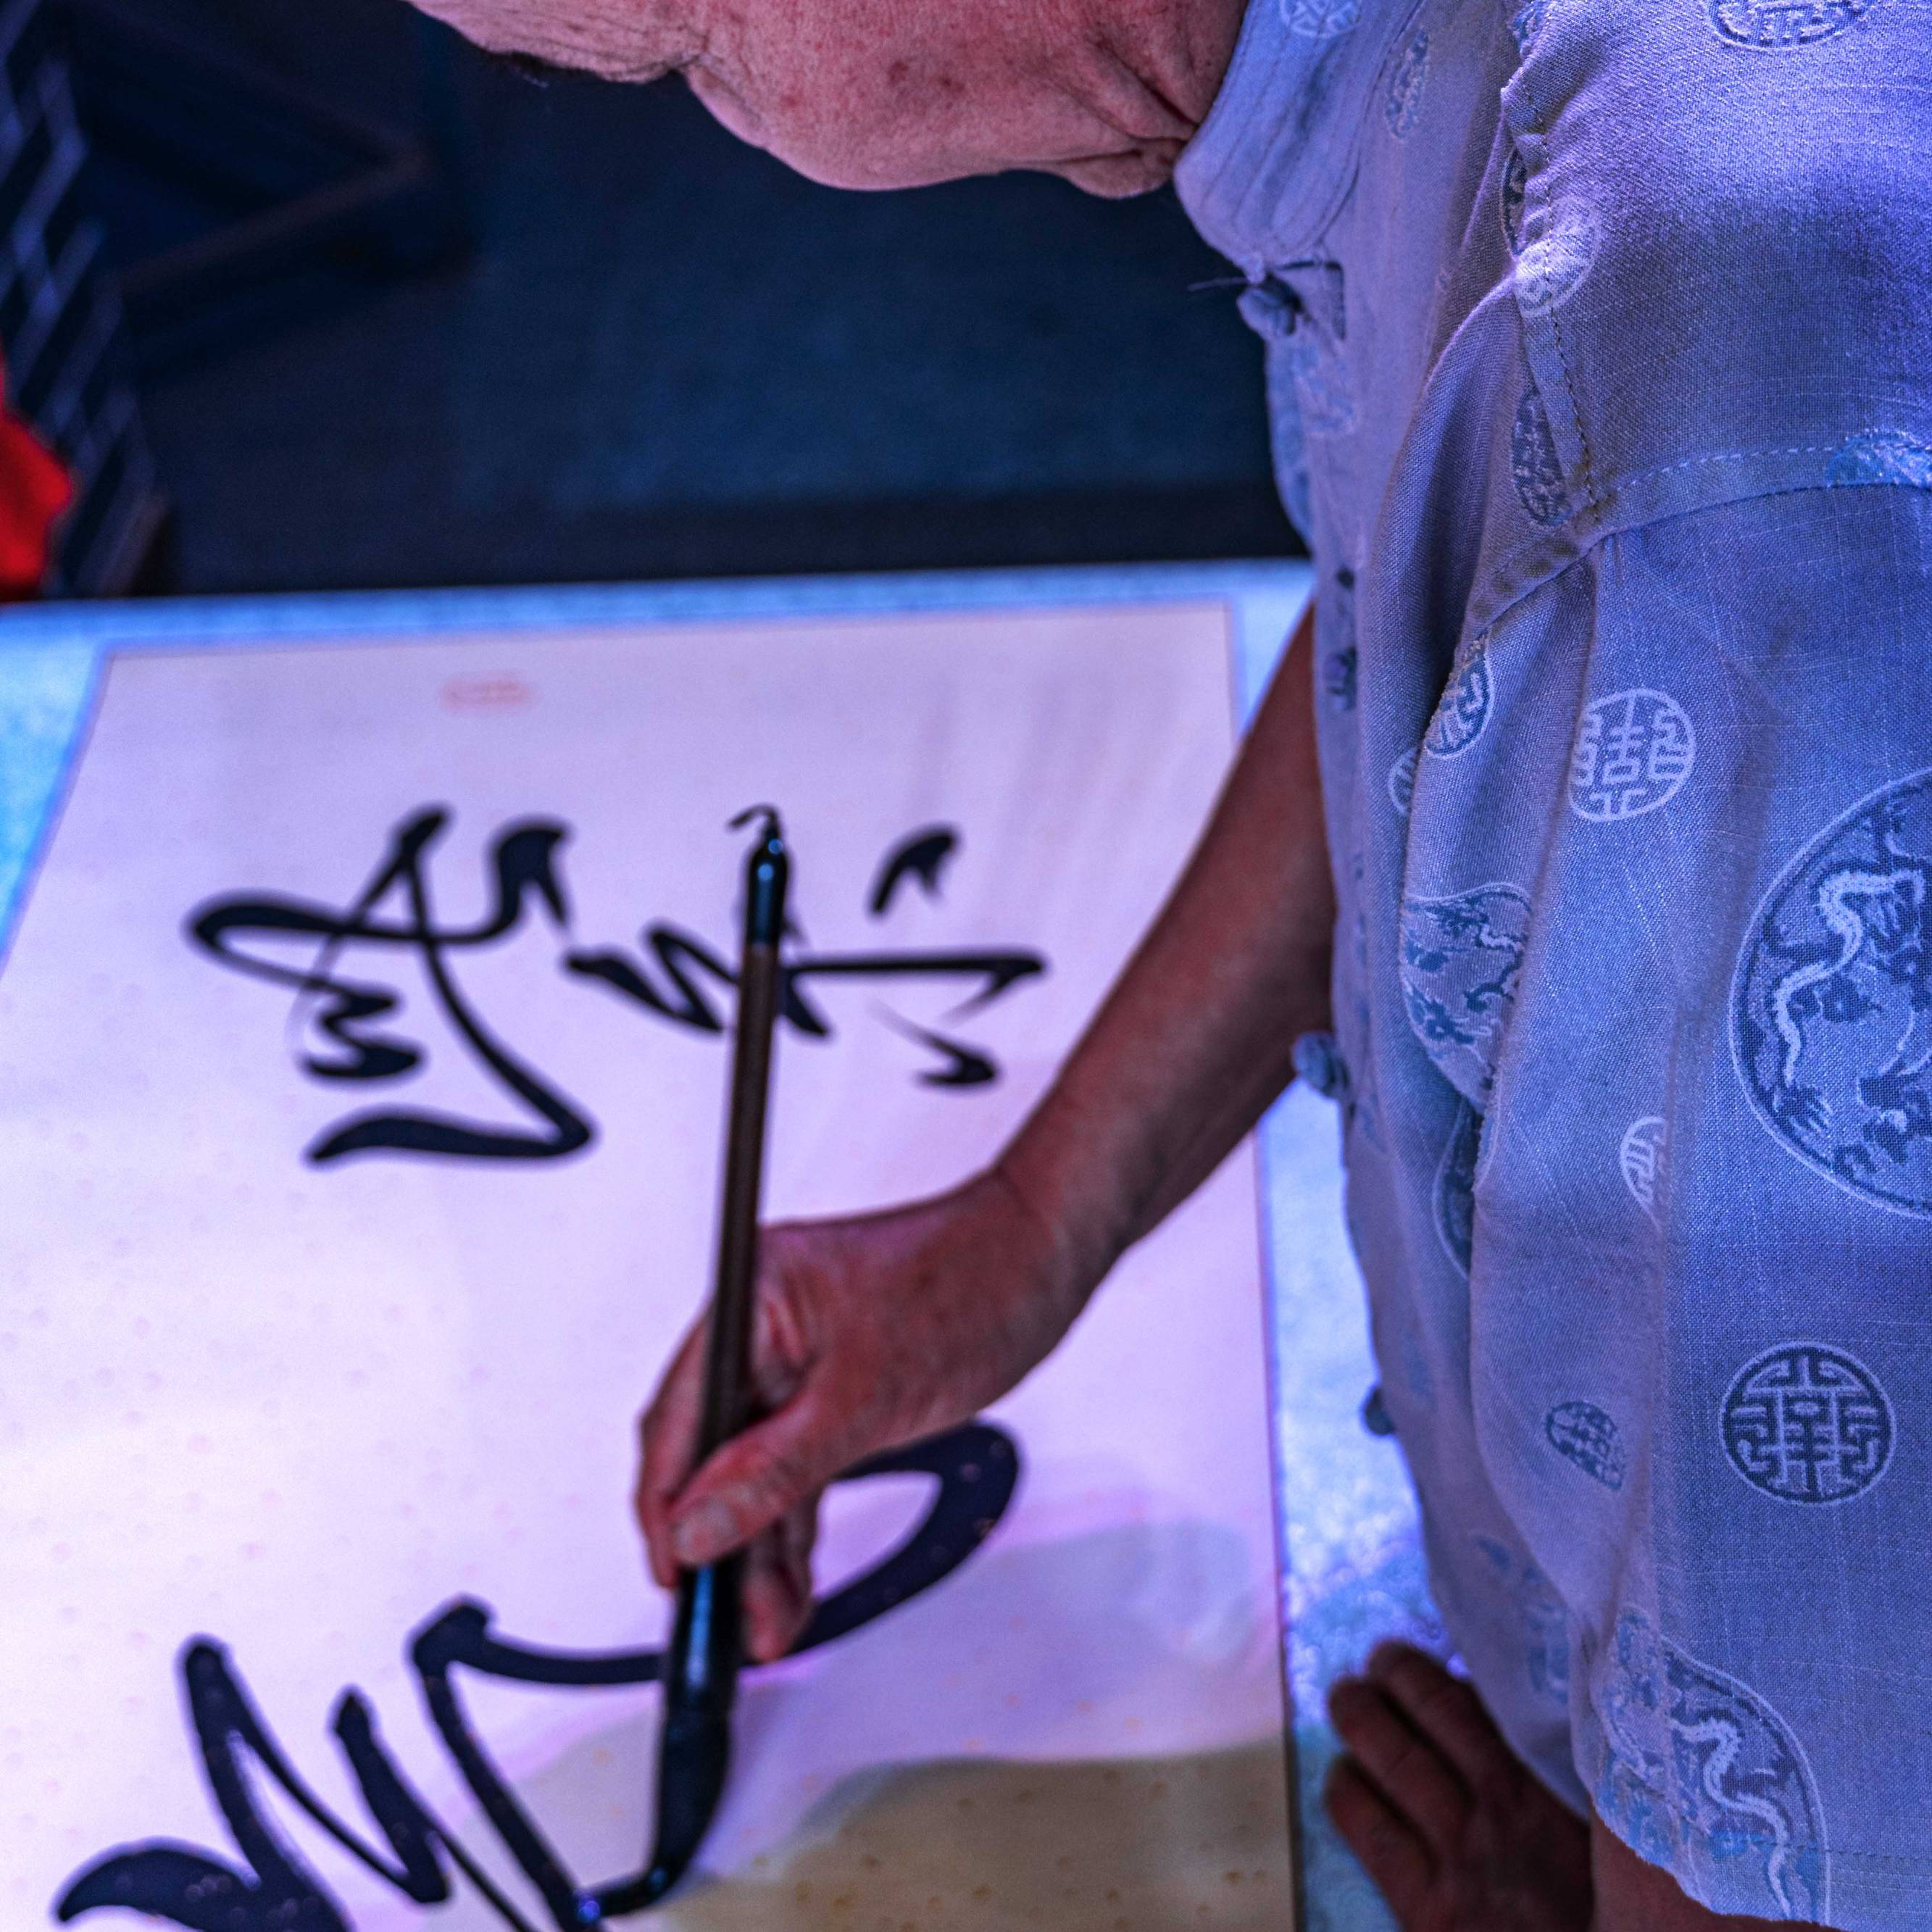 Calligraphy at Lao Xiang Feng Shaolin Temple